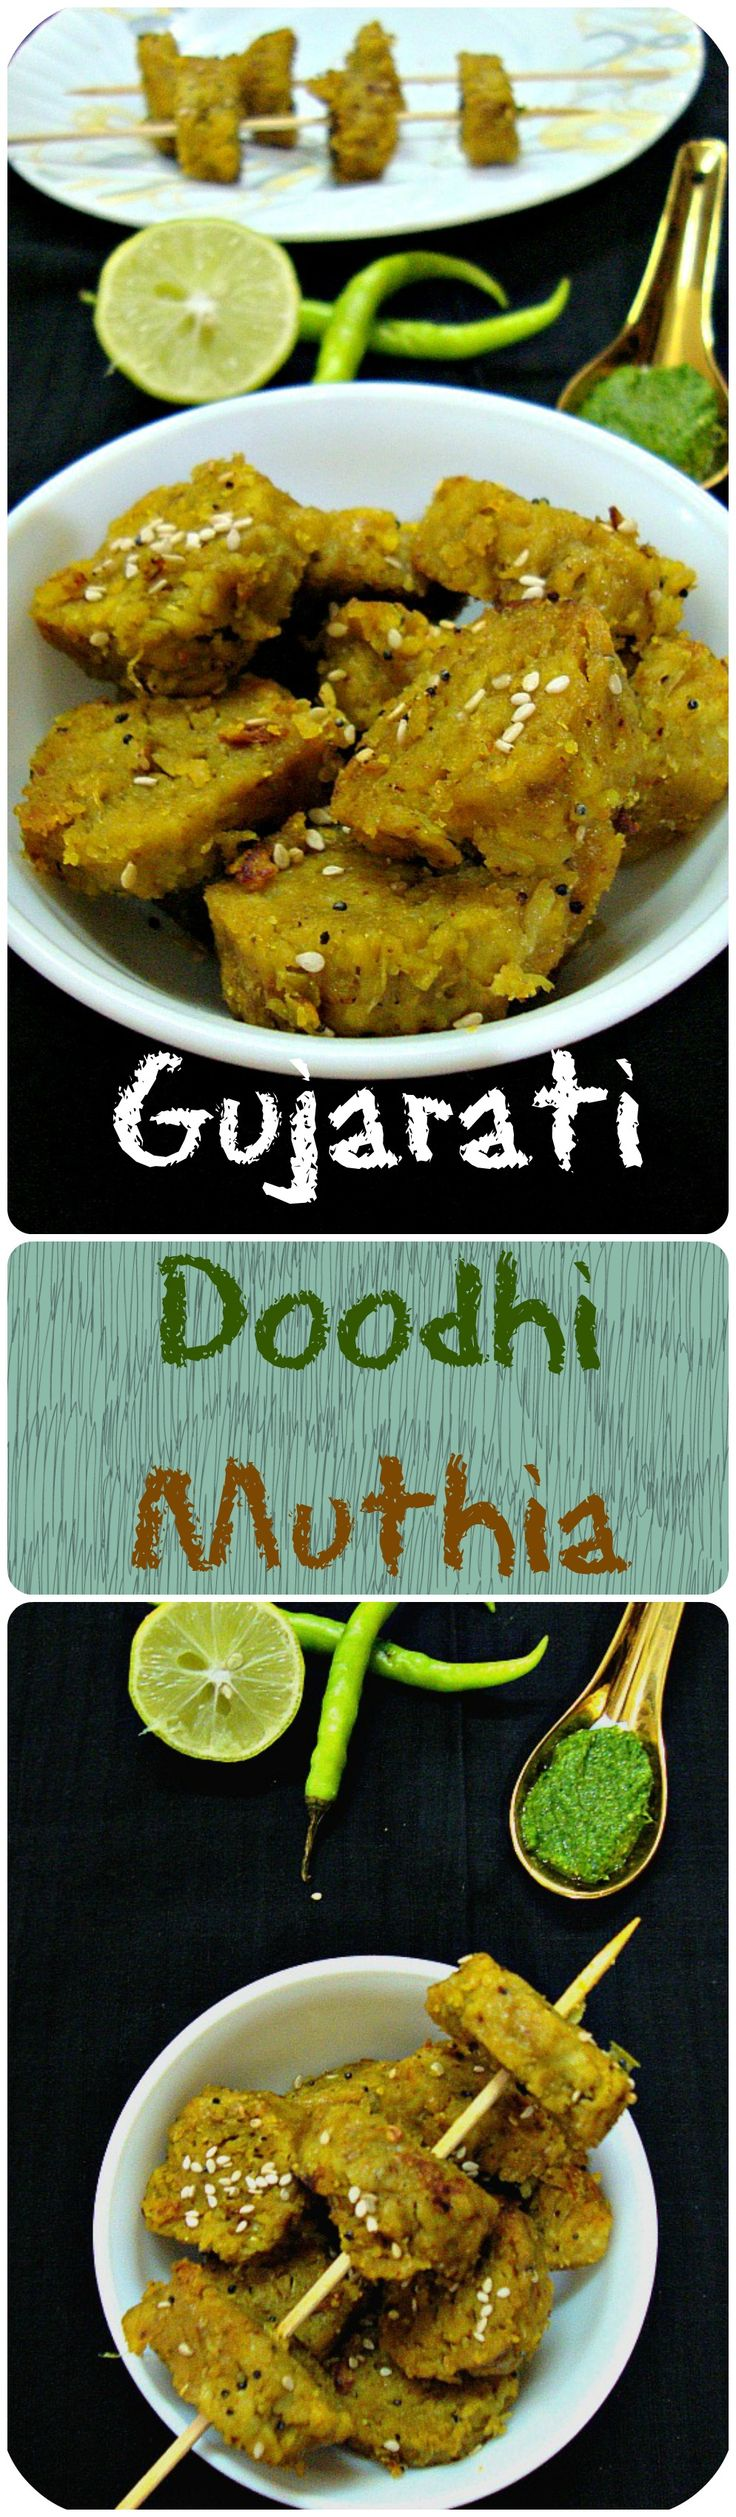 a healthy and delicious snack from gujarat which is made by combining wheat flour with grated bottle gourd and few spices. They are first steamed and then tempered with flavours of mustard seeds, sesame seeds and other spices.